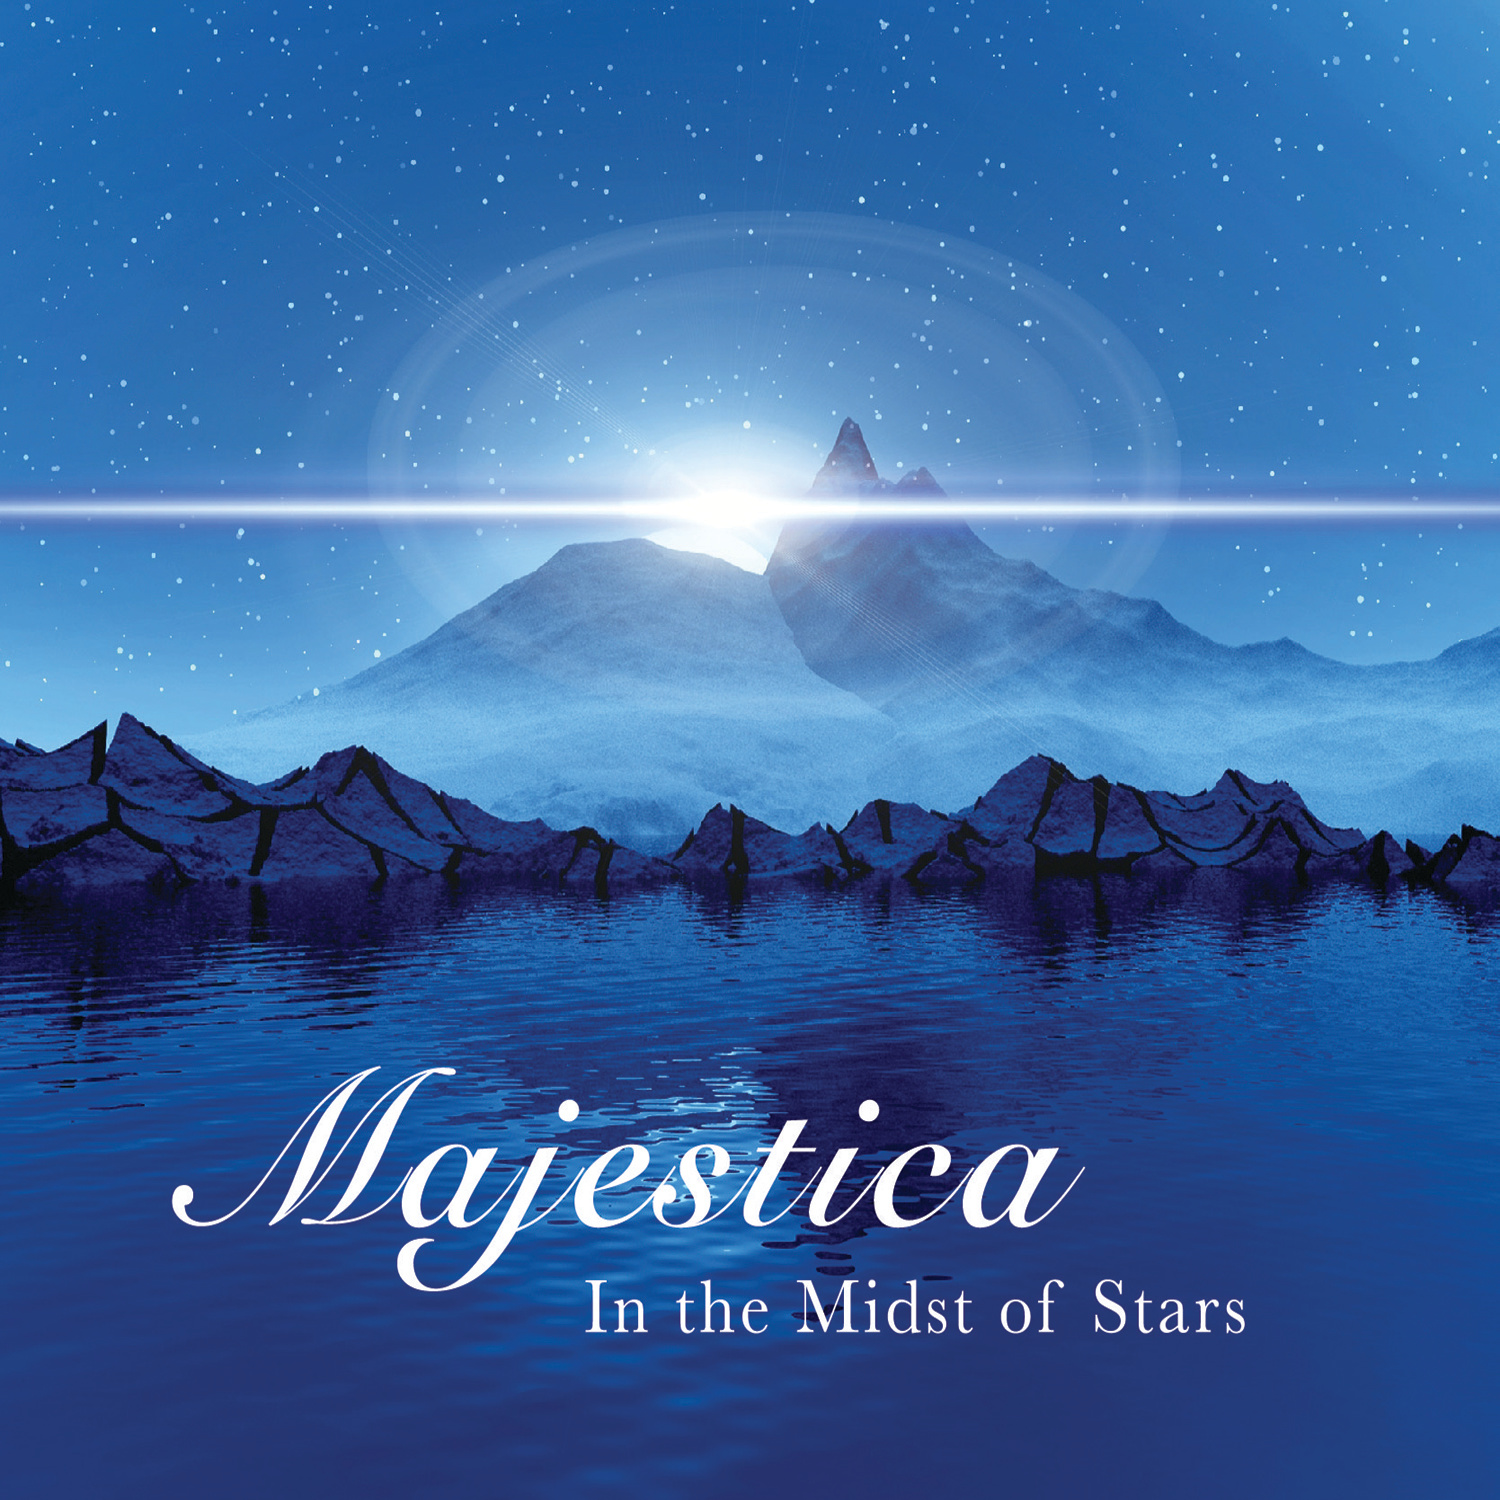 Majestica - In the Midst of Stars